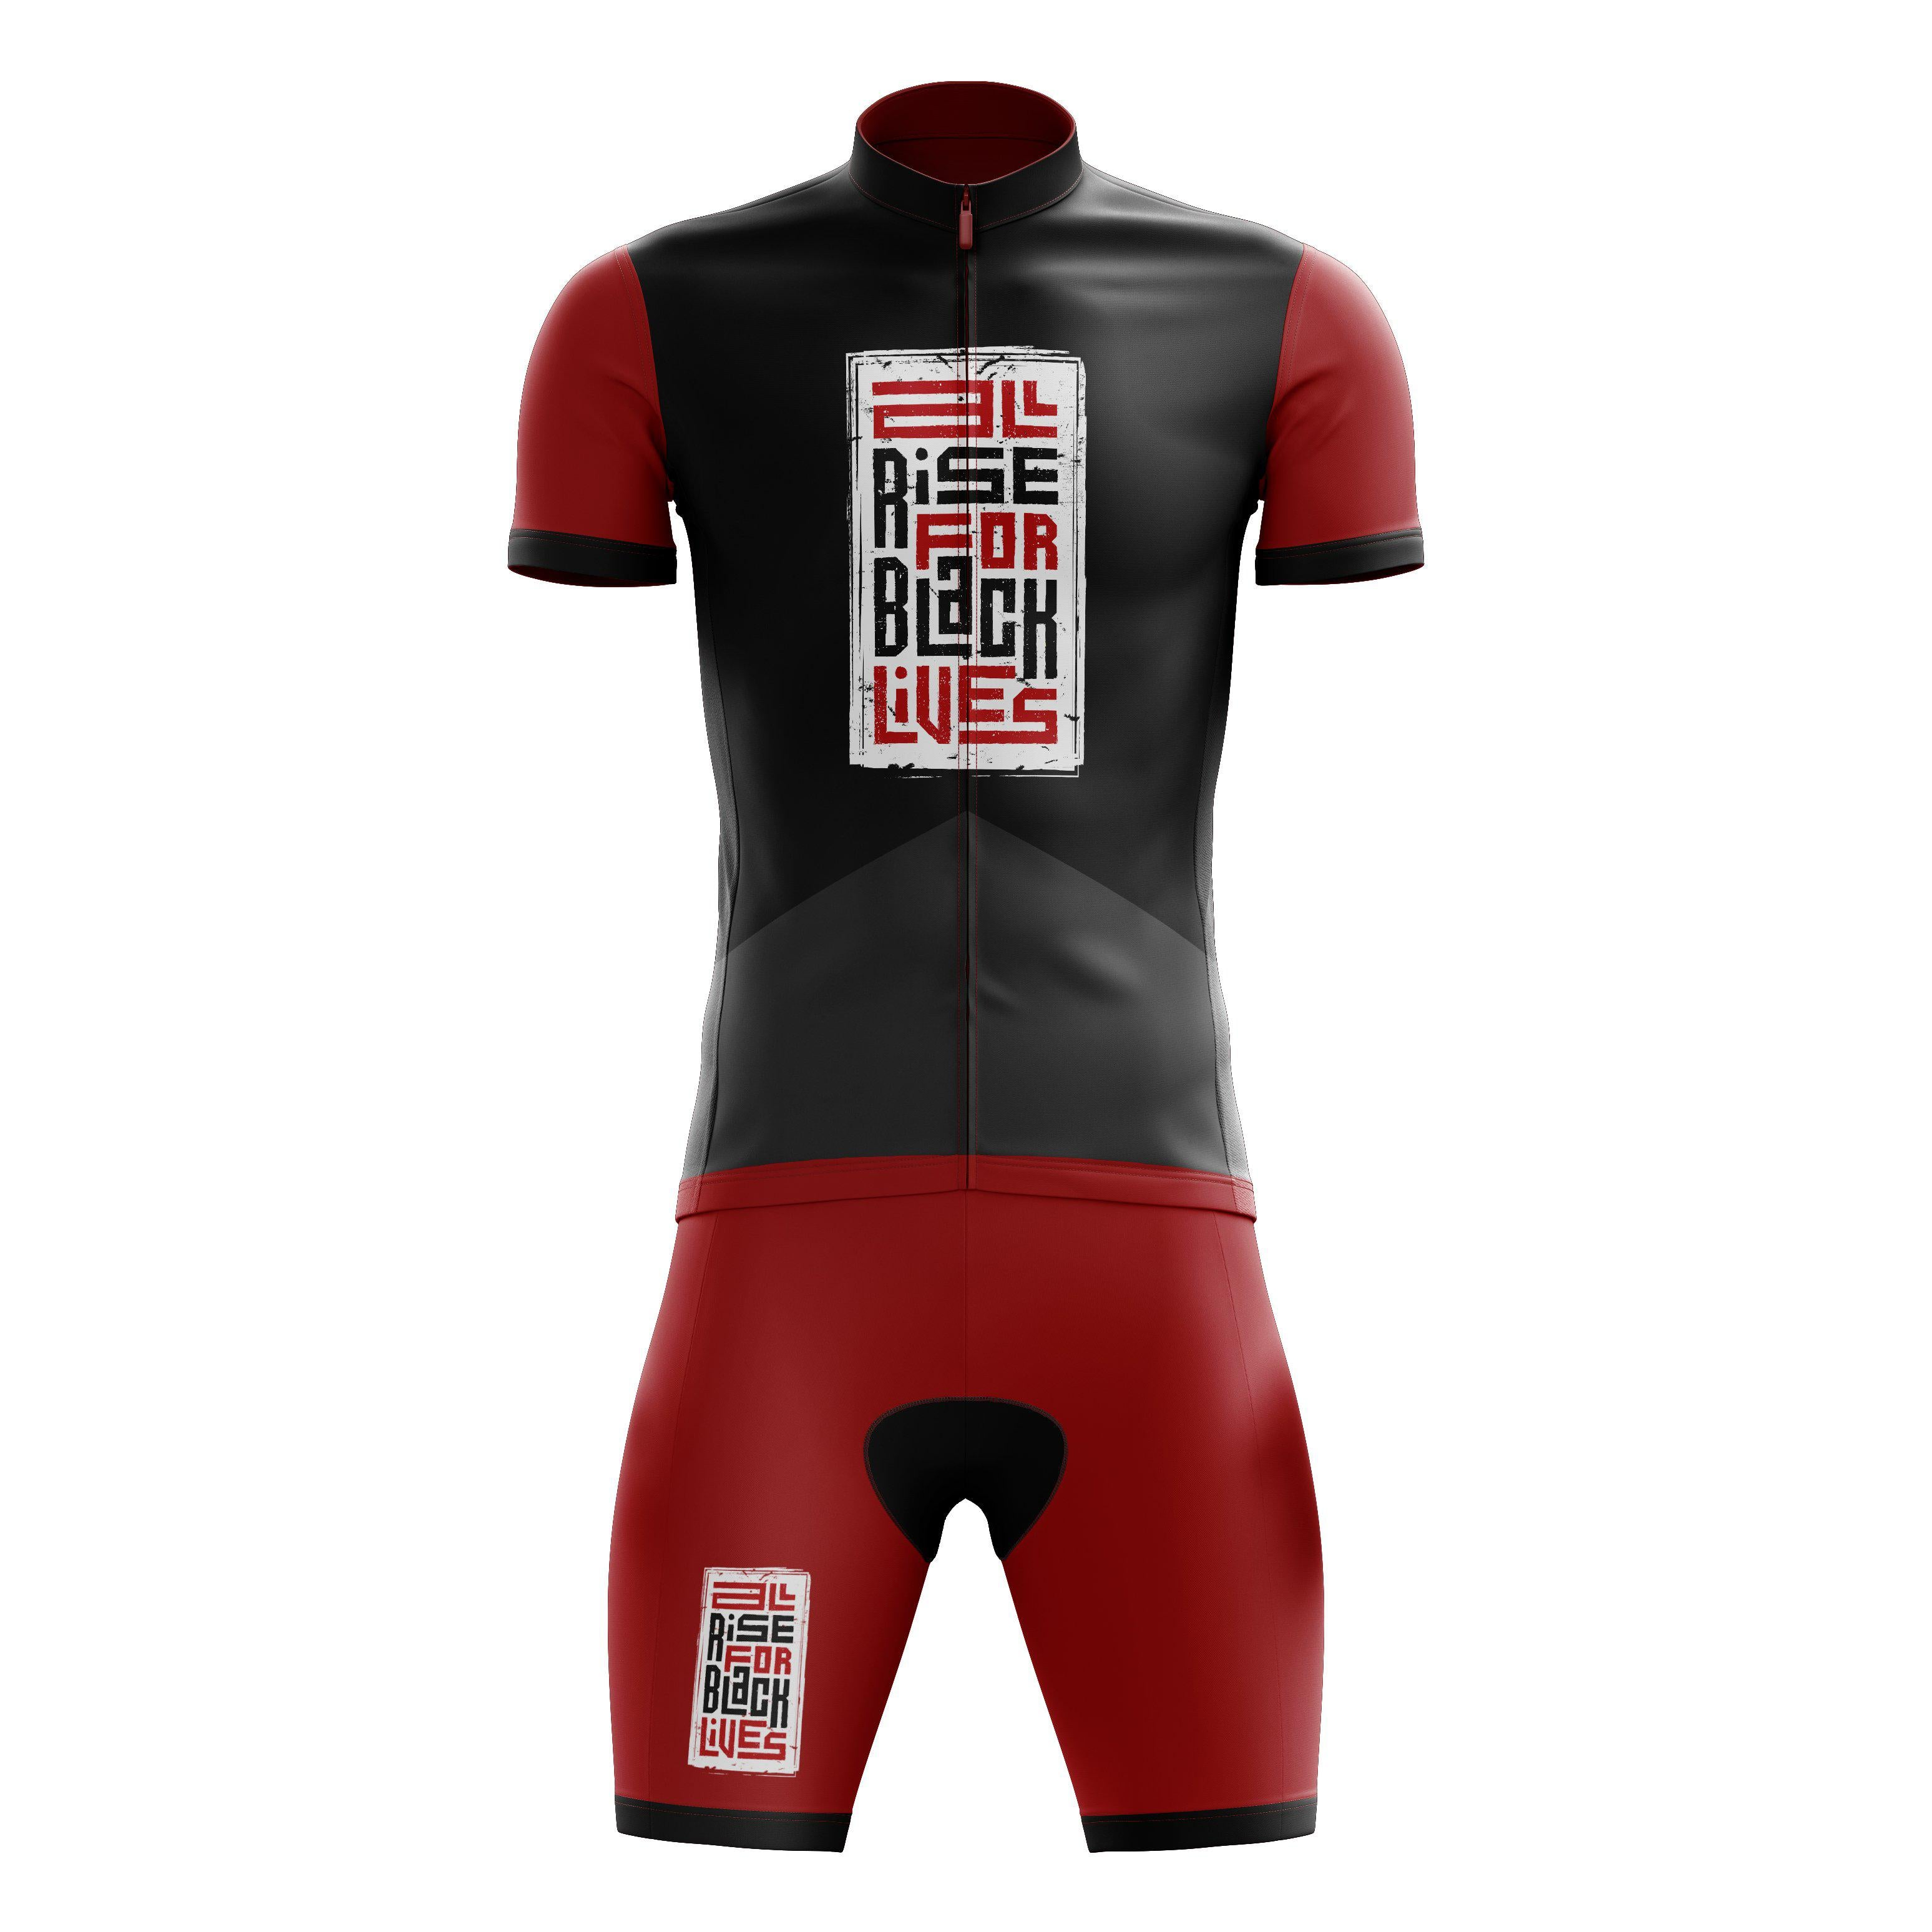 all rise for black lives cycling kit